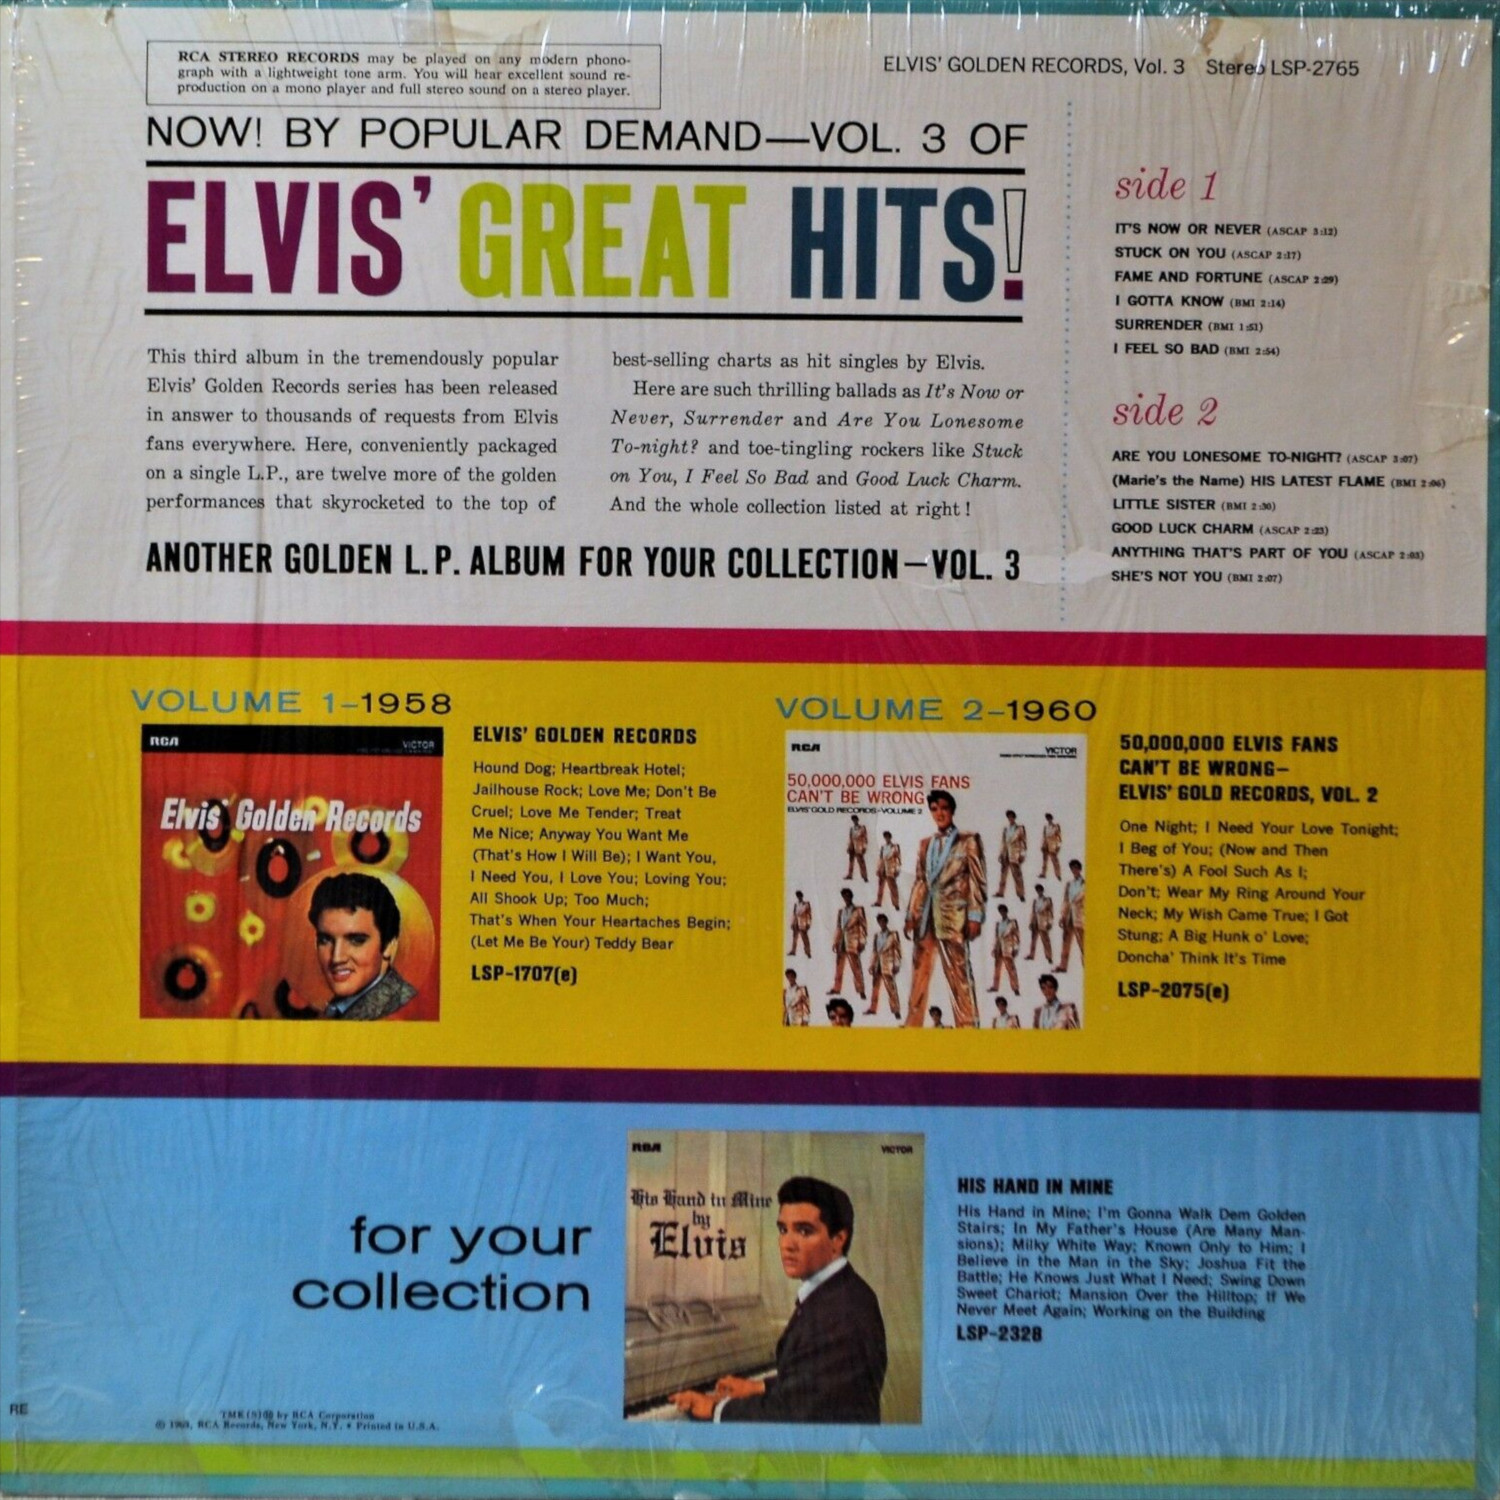 ELVIS' GOLD RECORDS VOL 3 Lsp-2785-76-2c4j0q